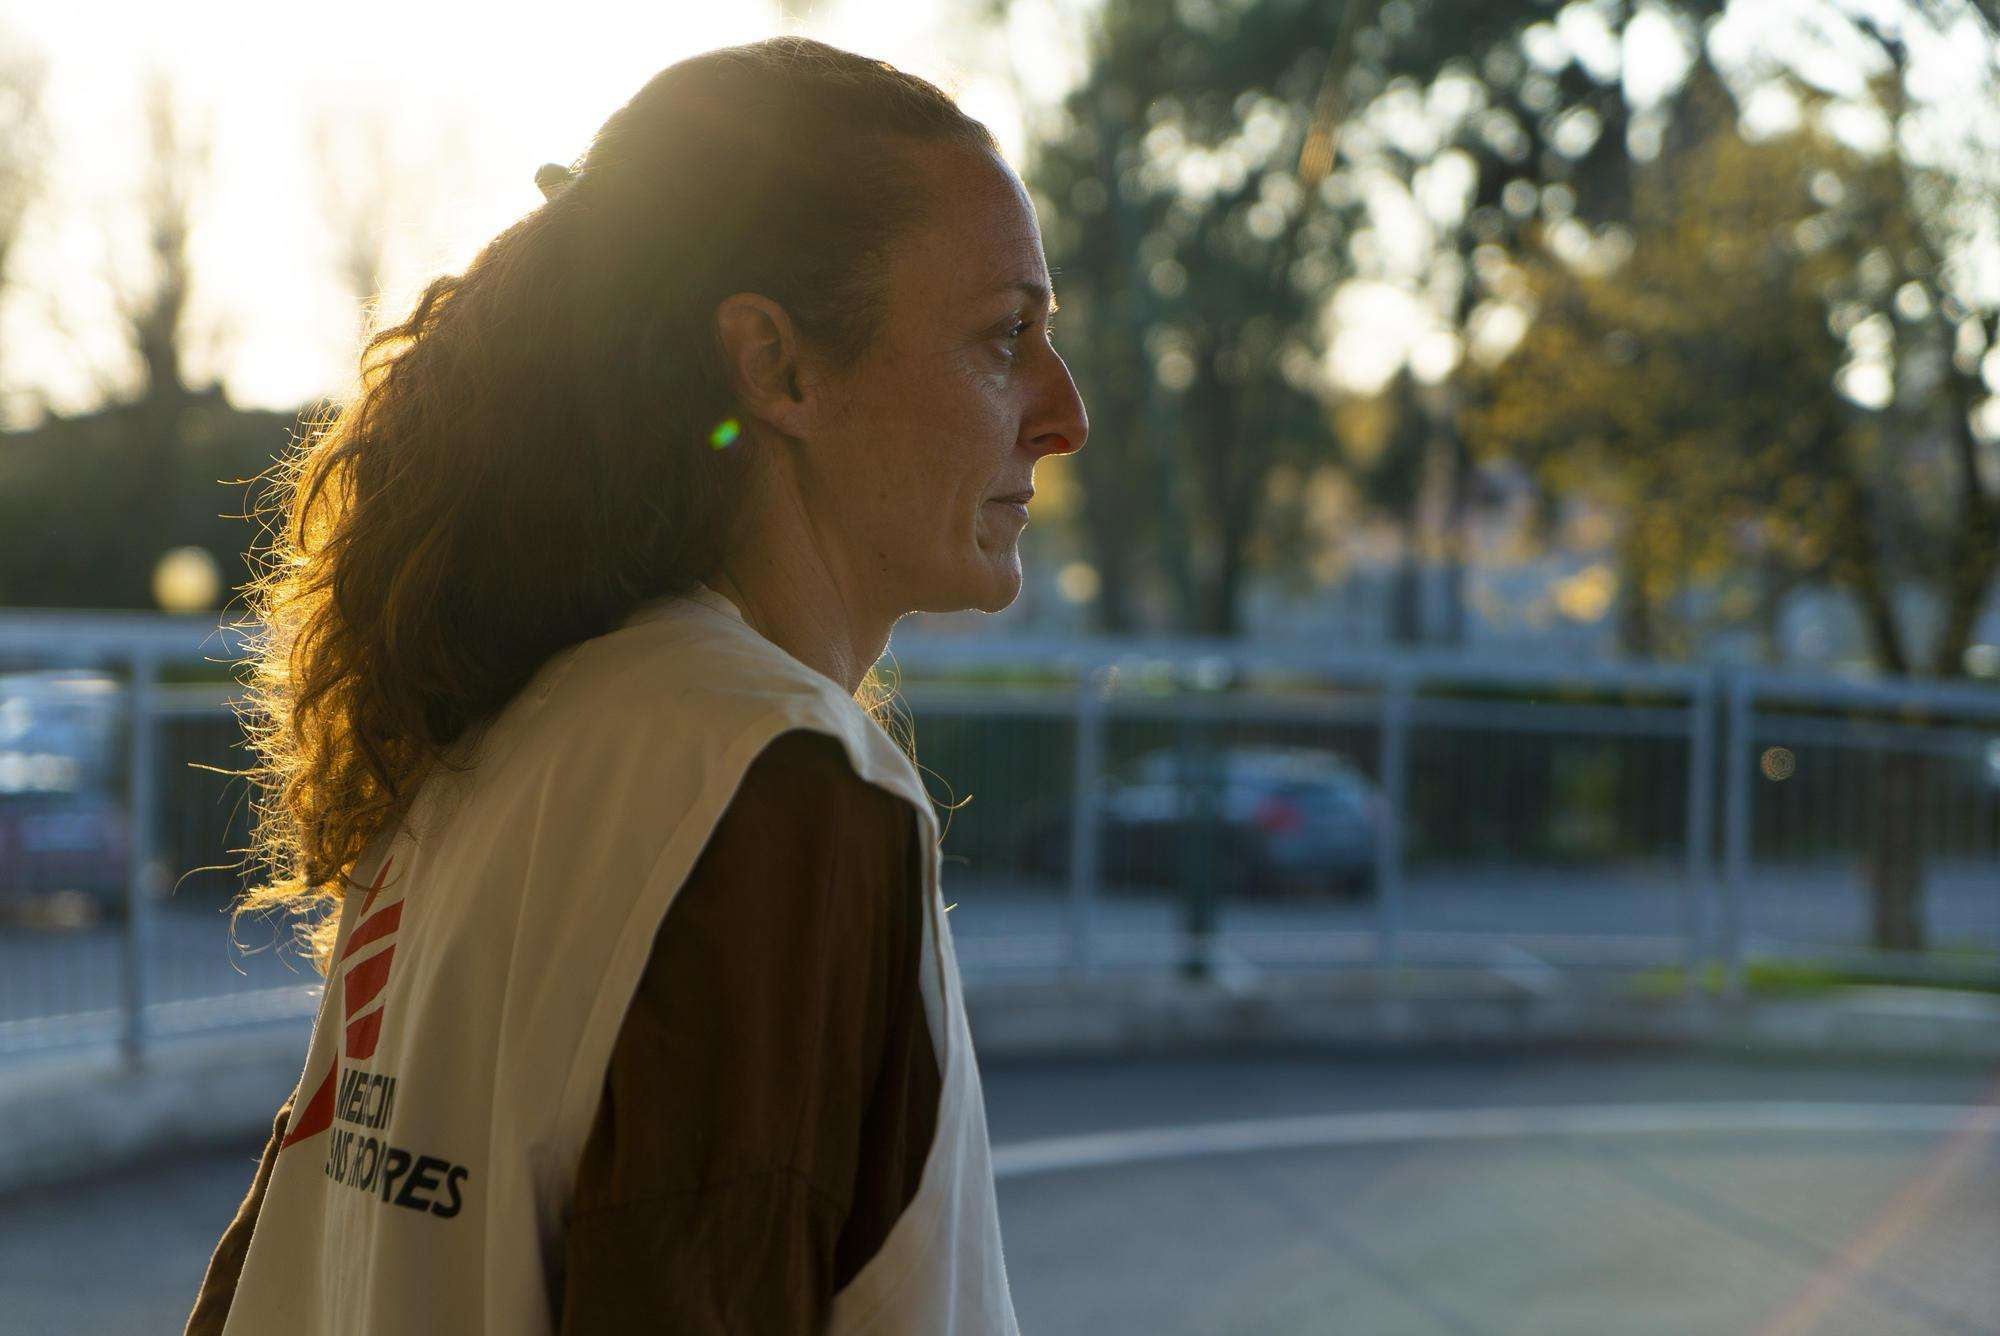 MSF intervention in north Italy - Carlotta Berutti